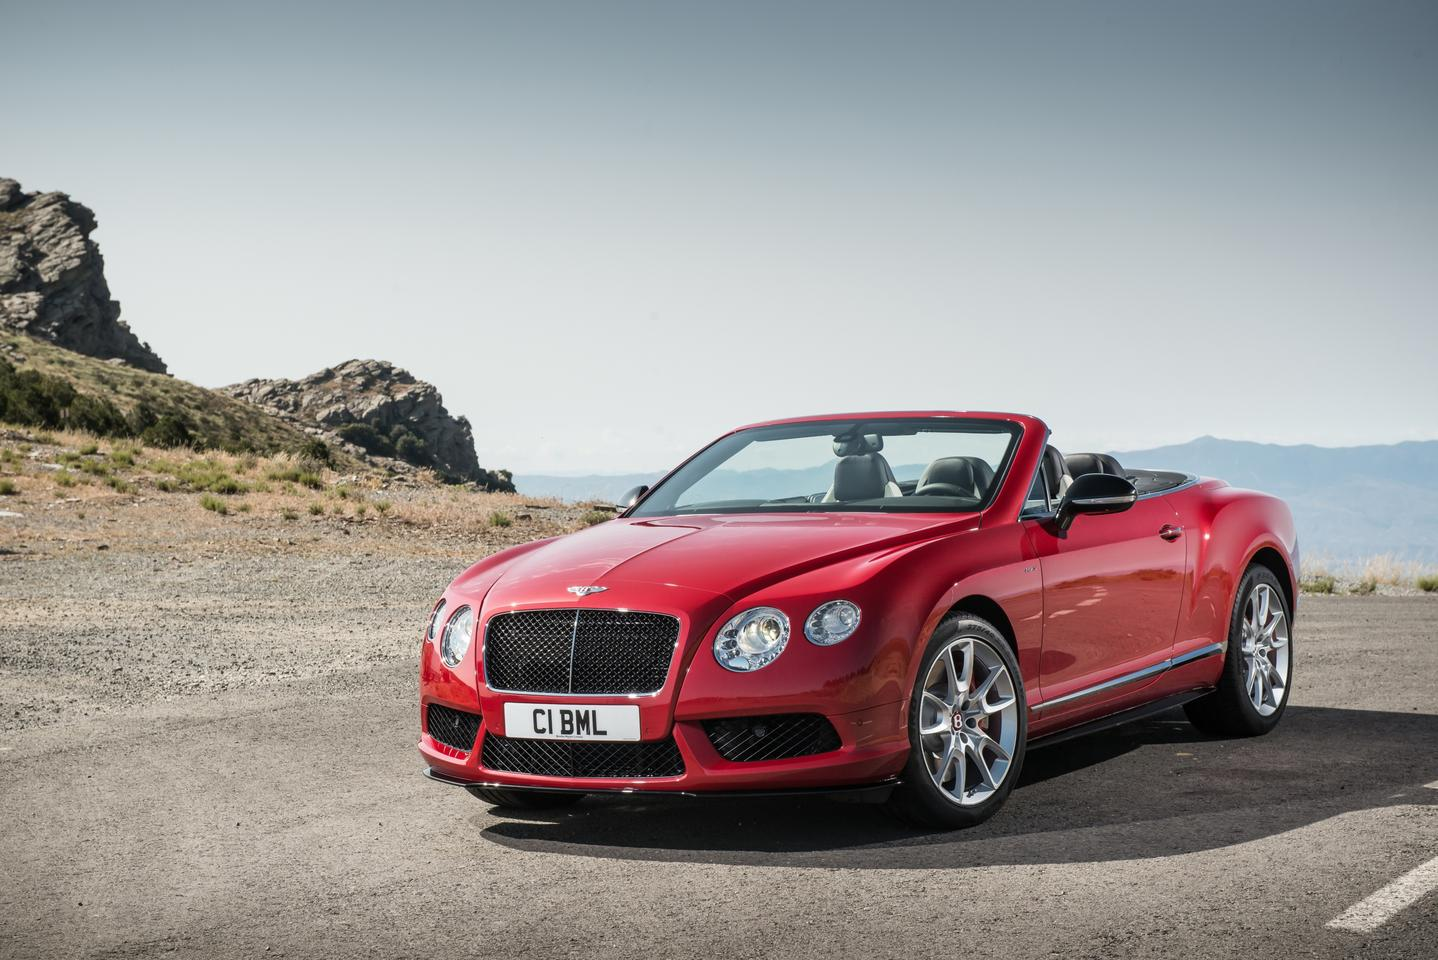 The Continental GT V8 S convertible